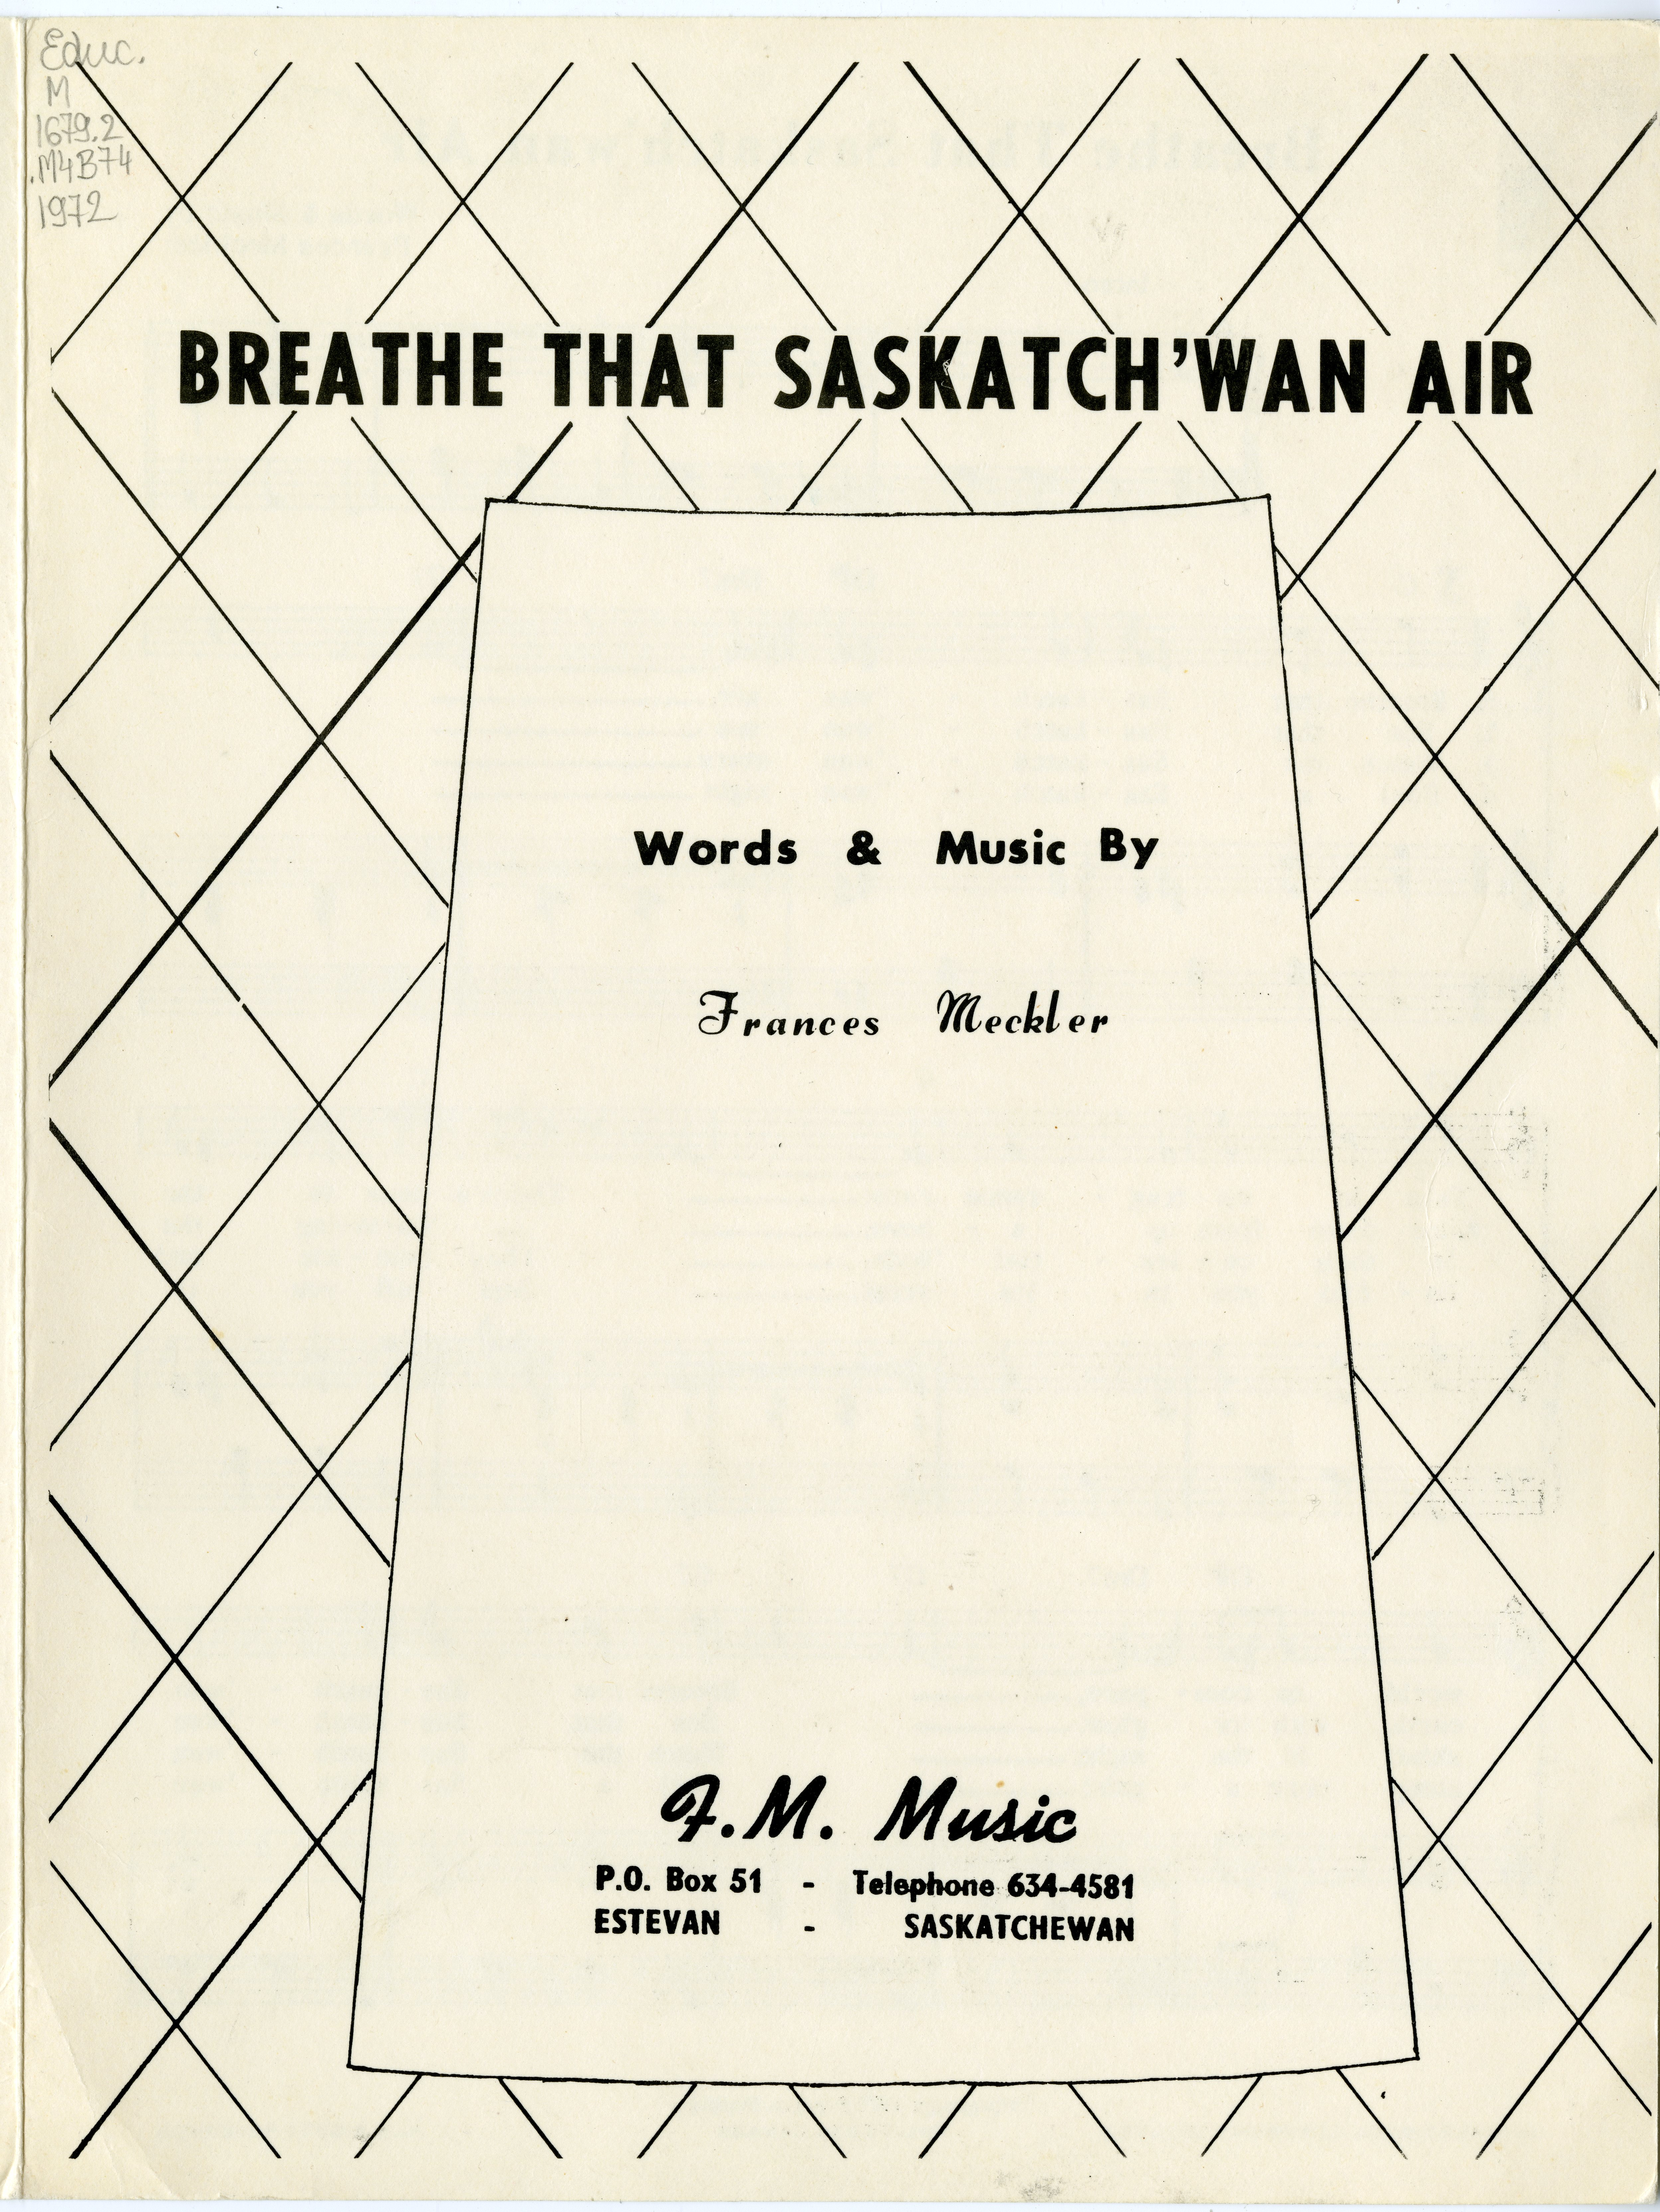 Breathe that Saskatch'wan air